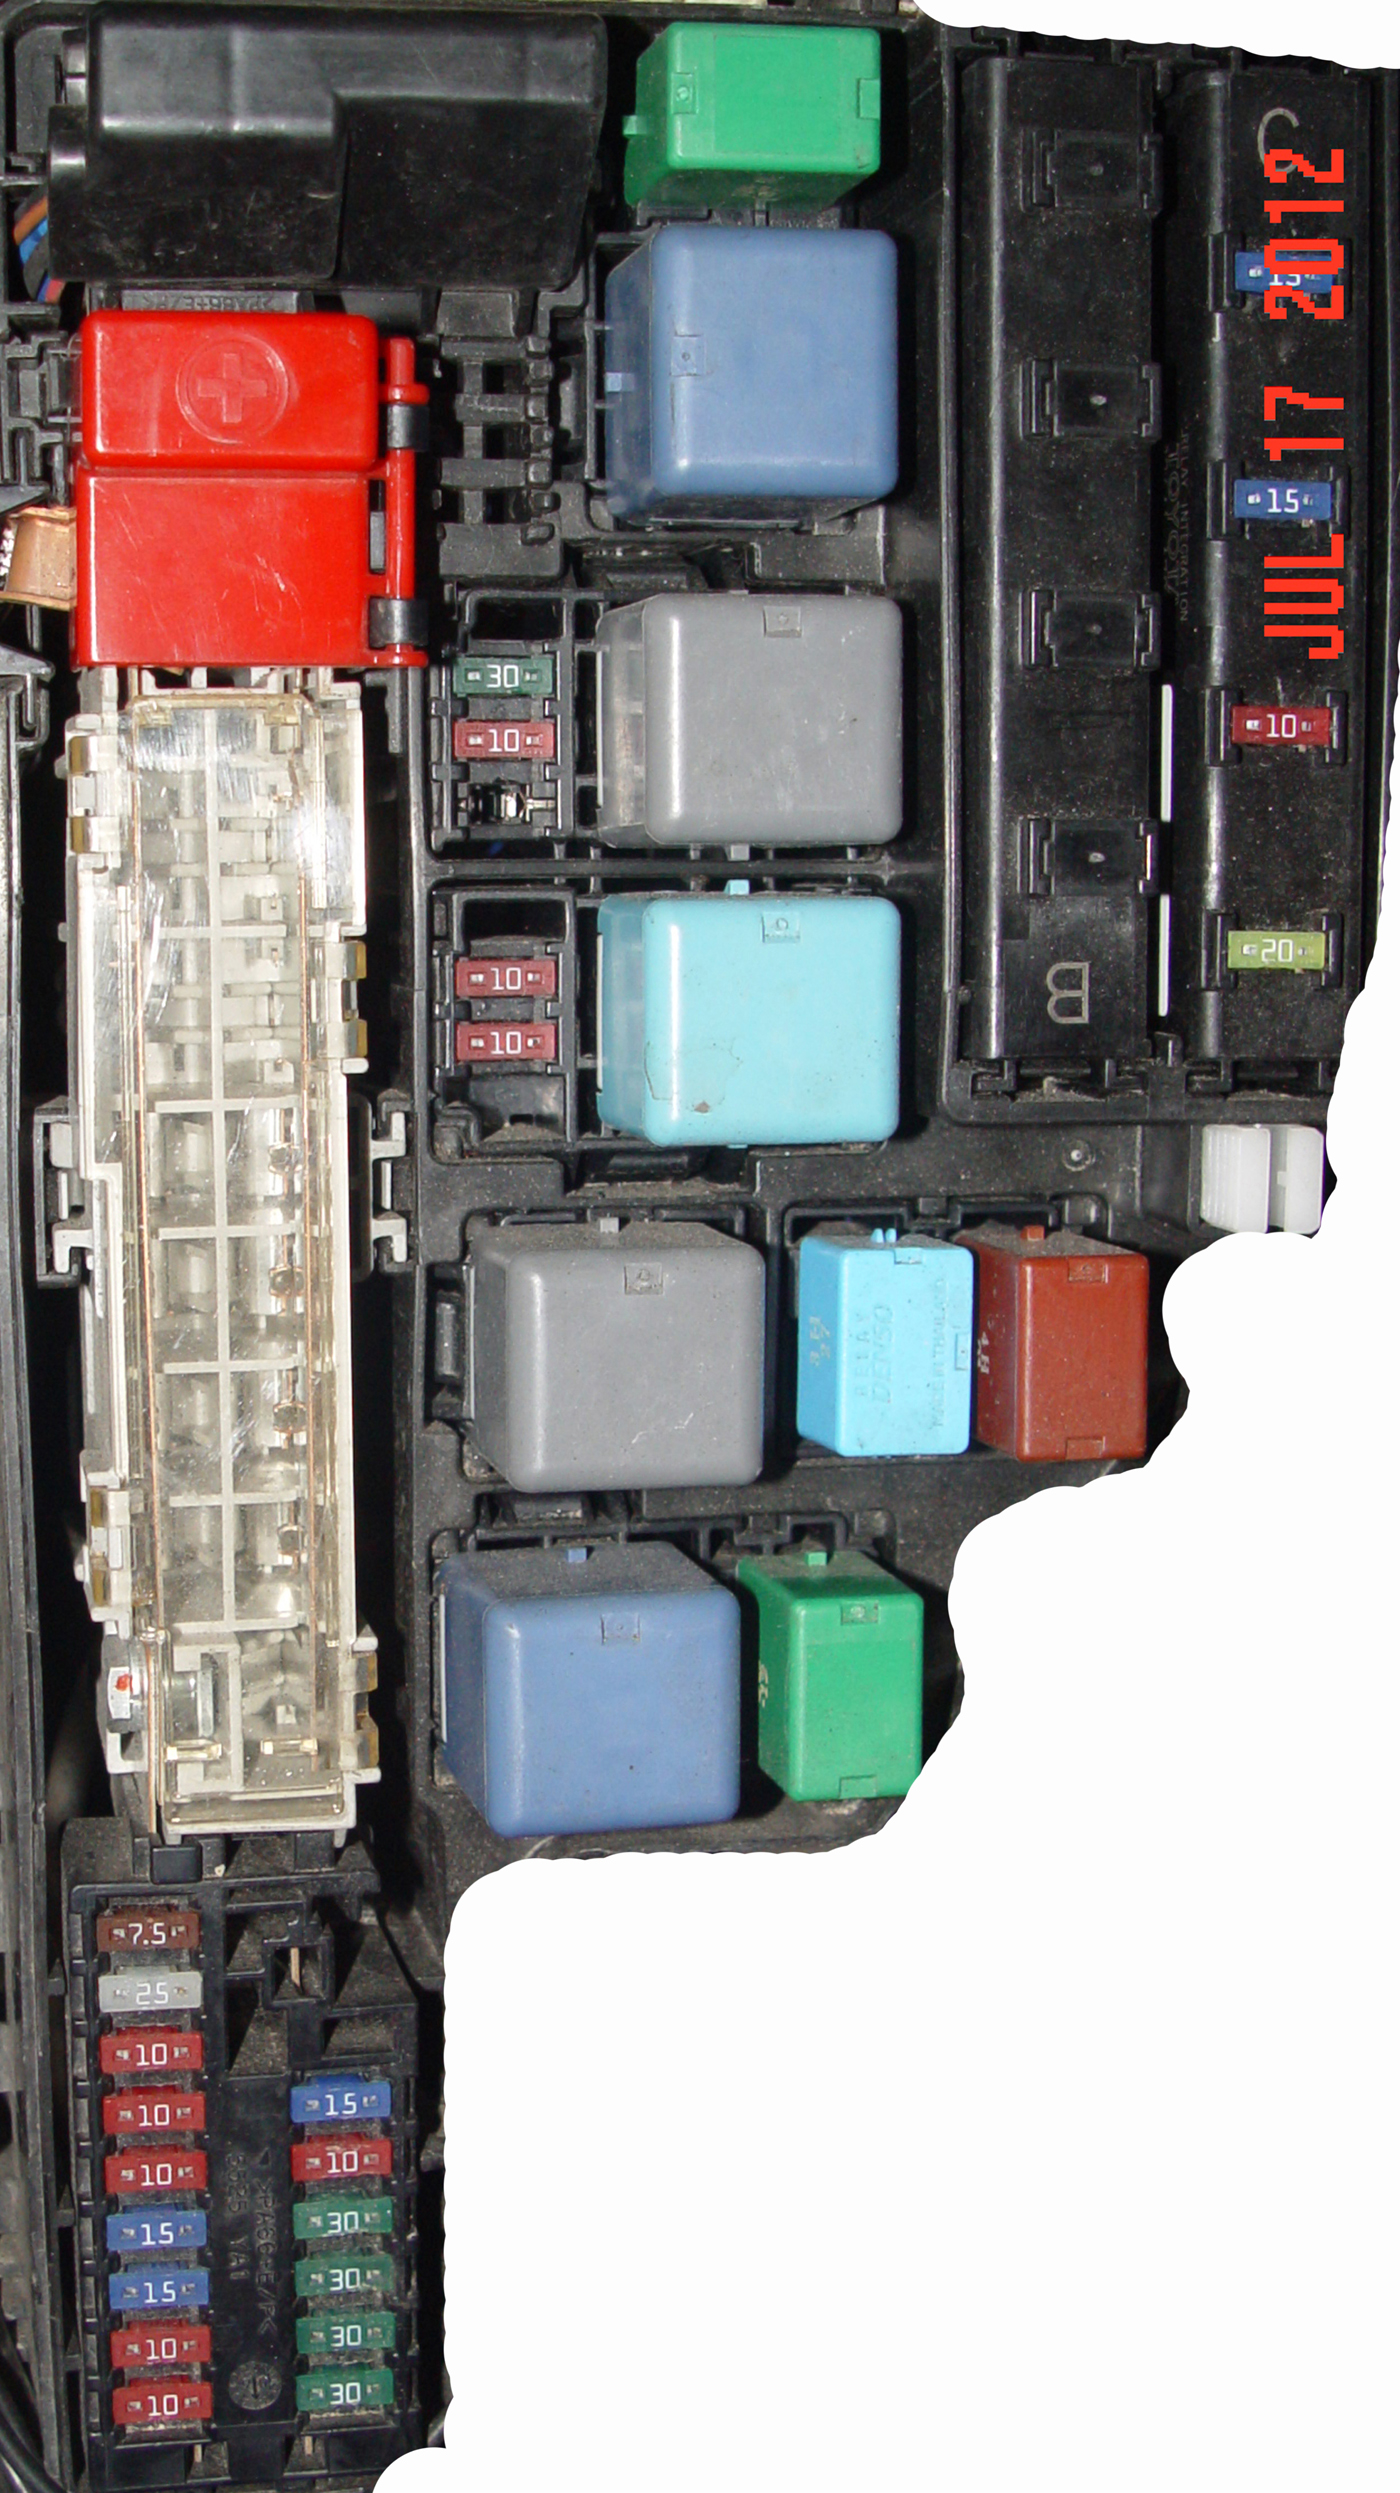 2004 toyota prius fuse box diagram iirGtIL 2008 toyota prius fuse box 2007 toyota prius fuse box \u2022 free 2003 toyota fuse box at bayanpartner.co